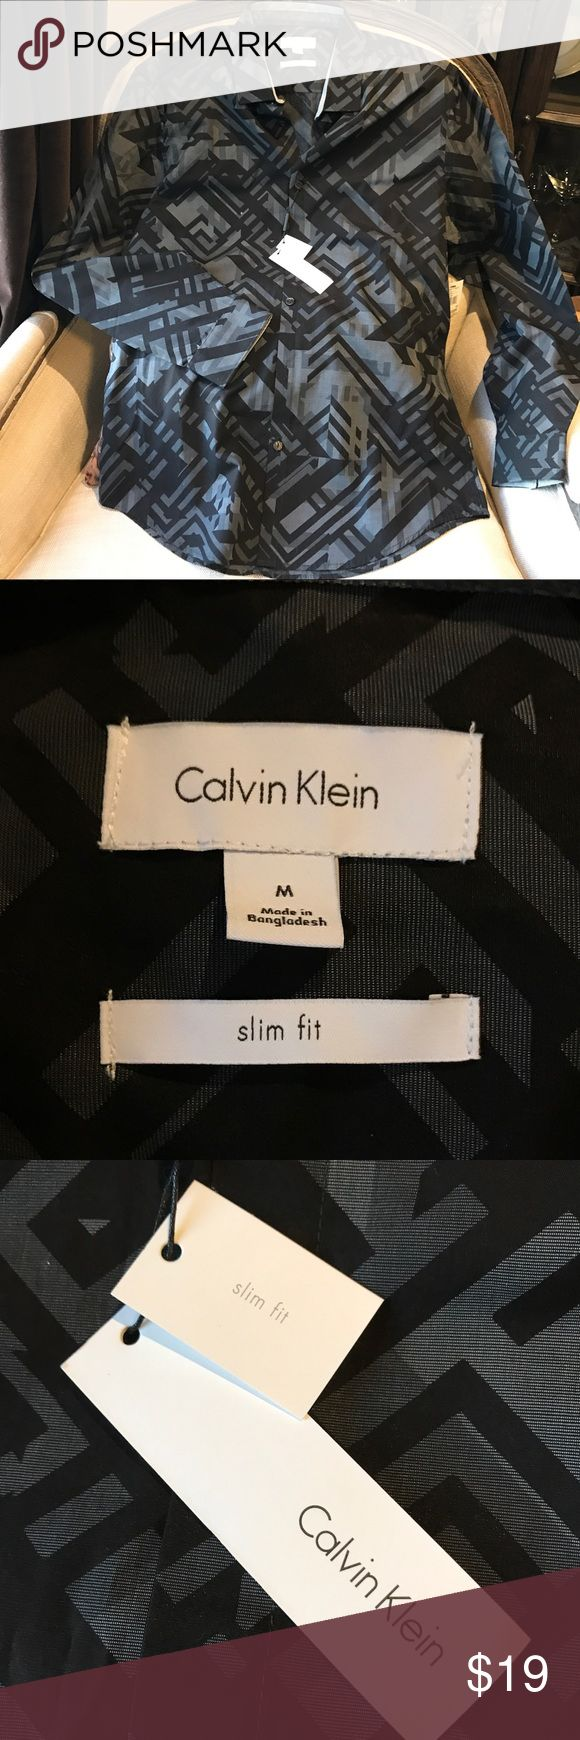 NWT Calvin Klein Slim Fit Dress Shirt, Med What a great date night Shirt!  Brand new with tags, slim fit, size Medium Calvin Klein Shirts Dress Shirts